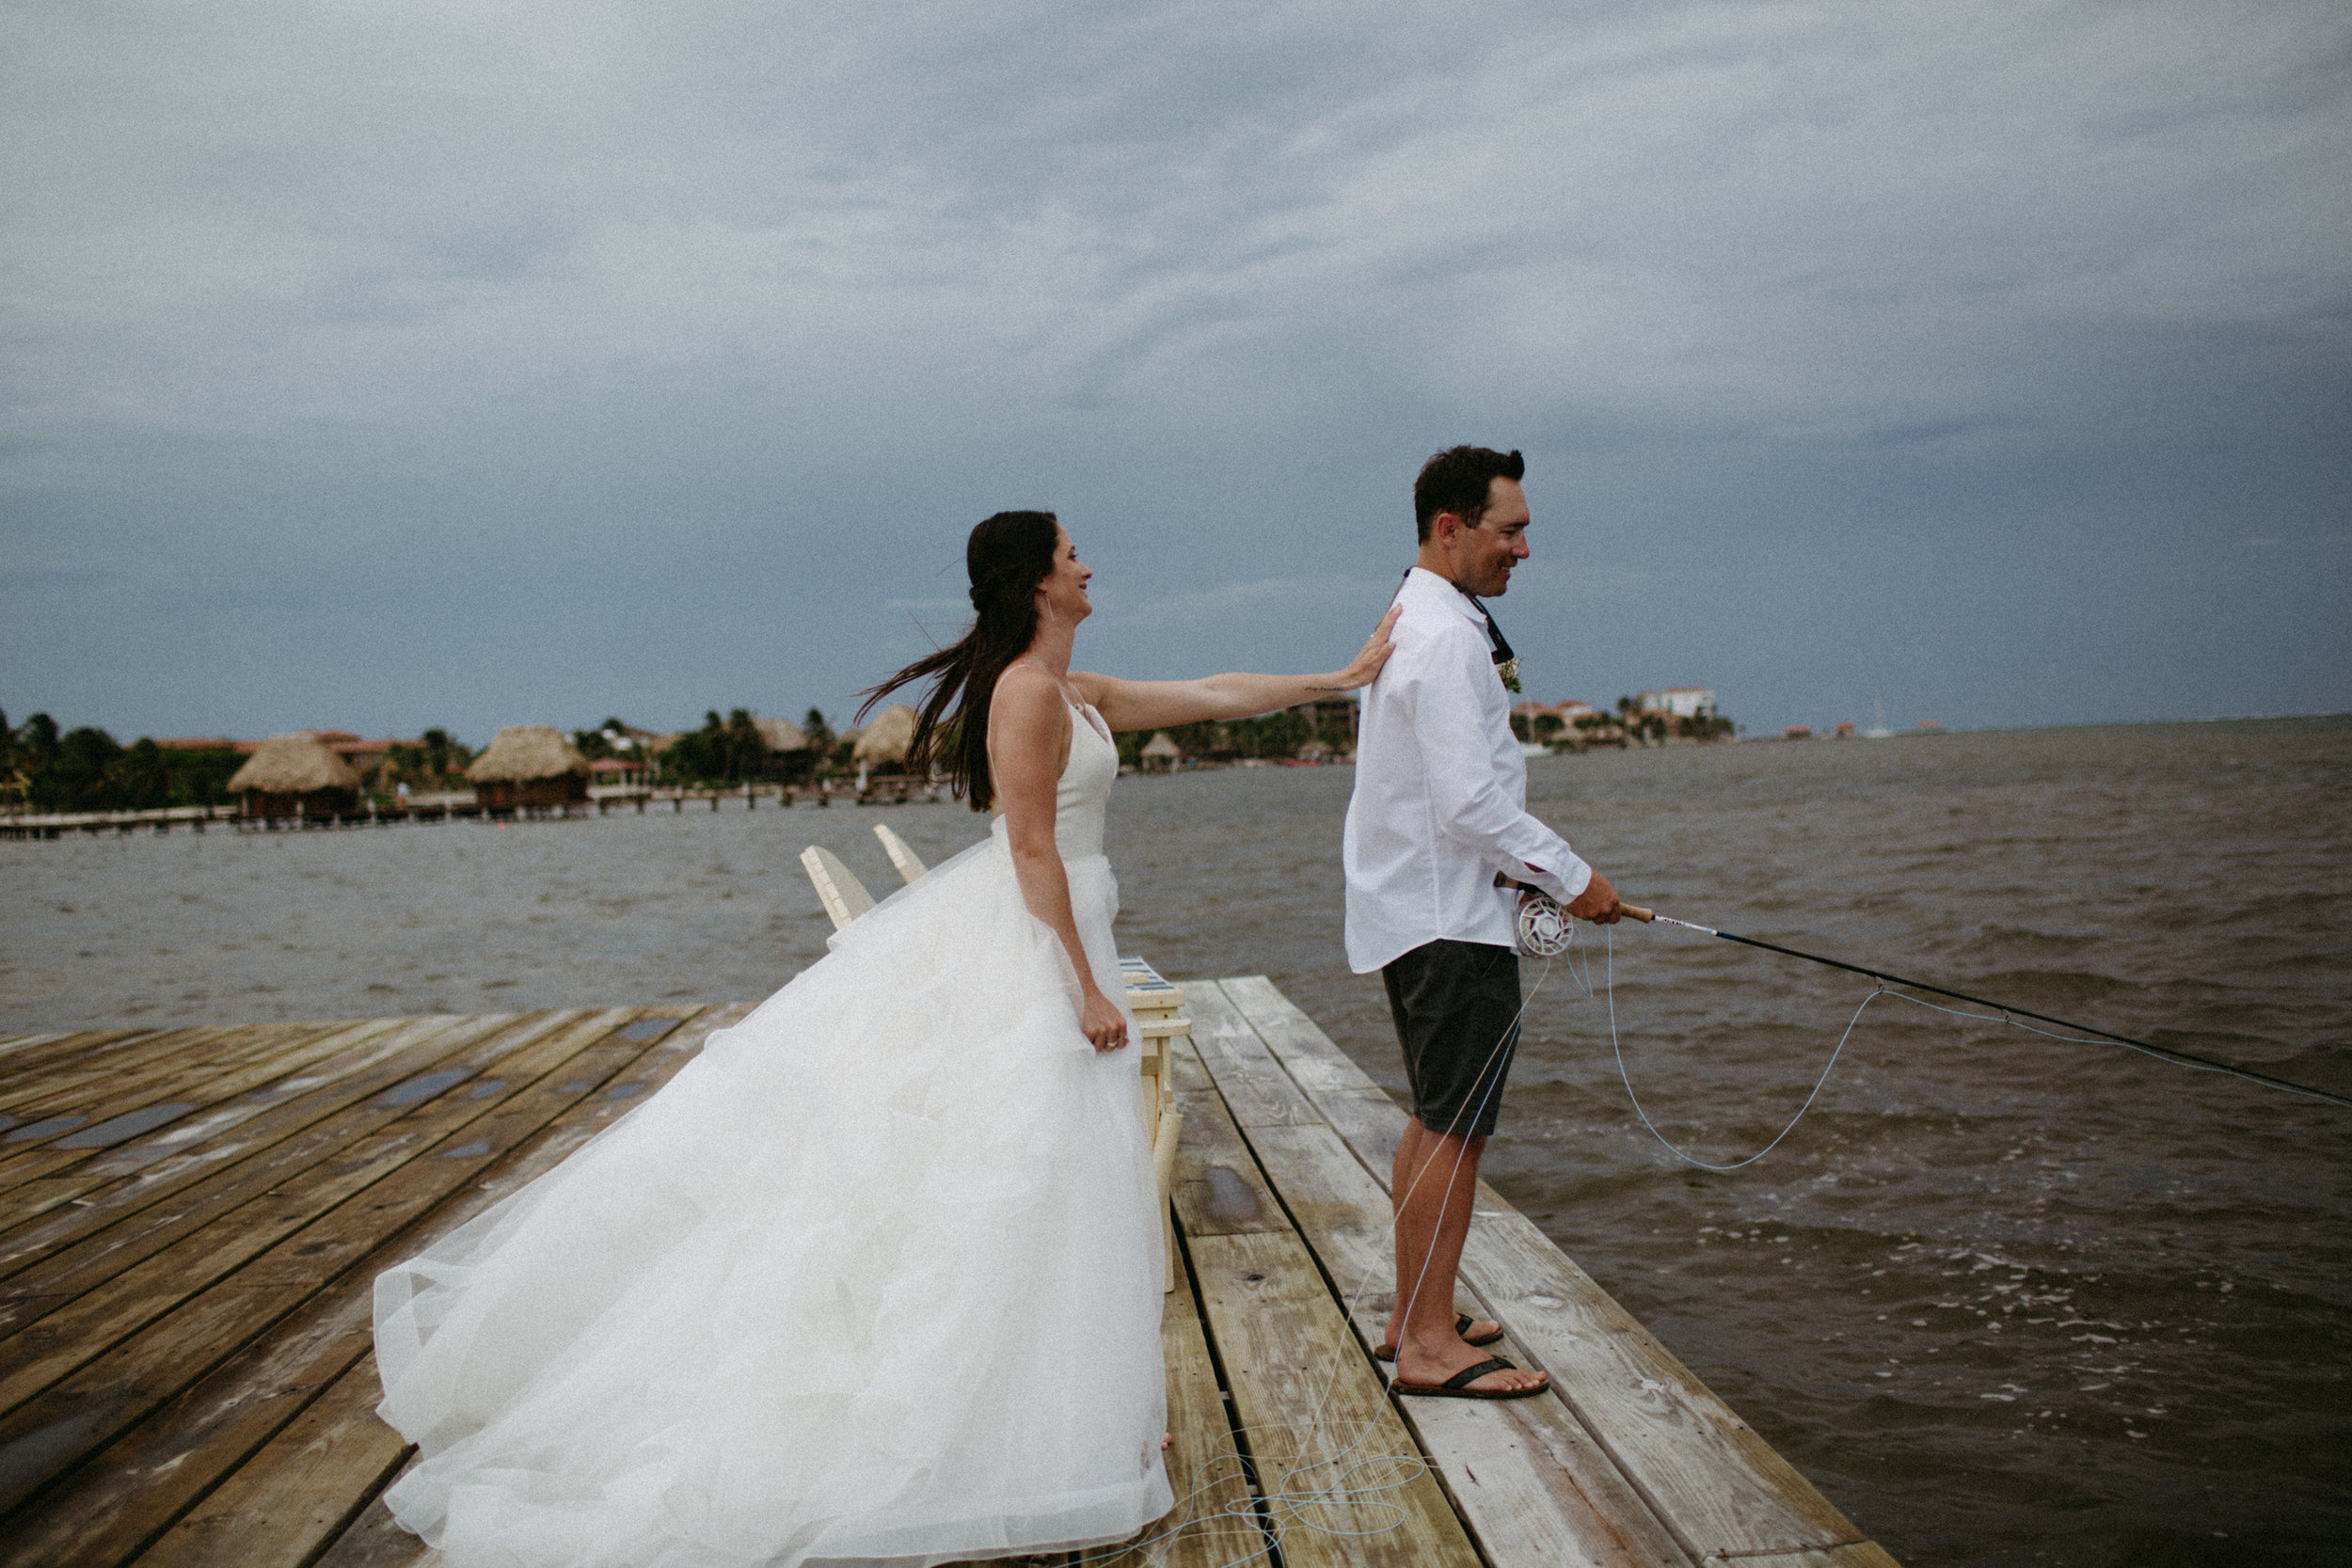 san-pescador-belize-wedding-christinemariephoto-j-k-33.jpg